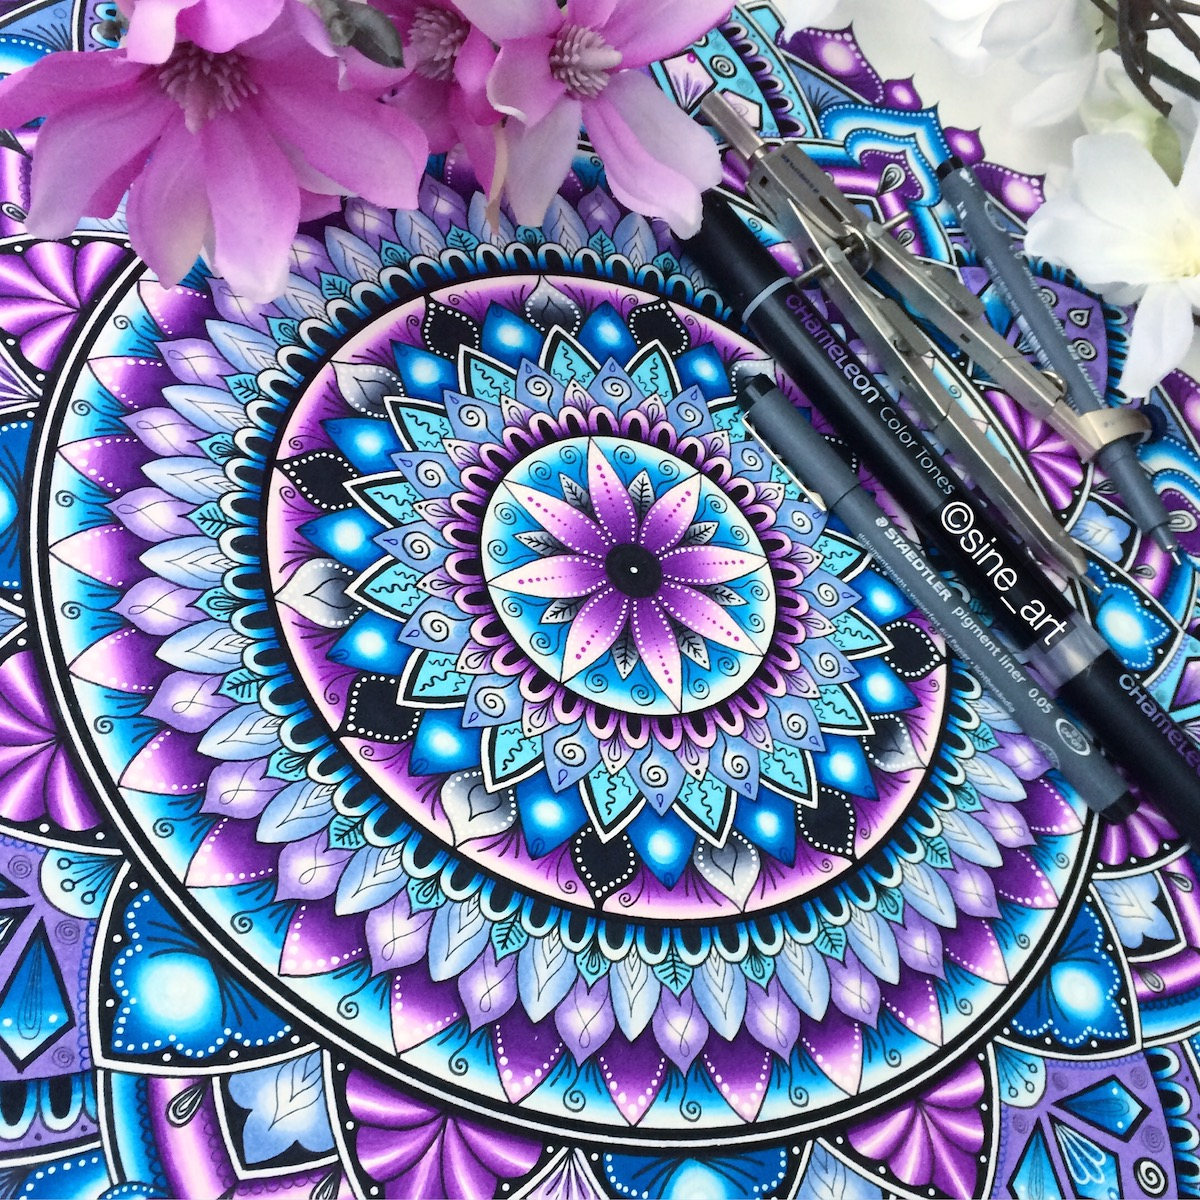 Chameleon Art Products - Adult Coloring